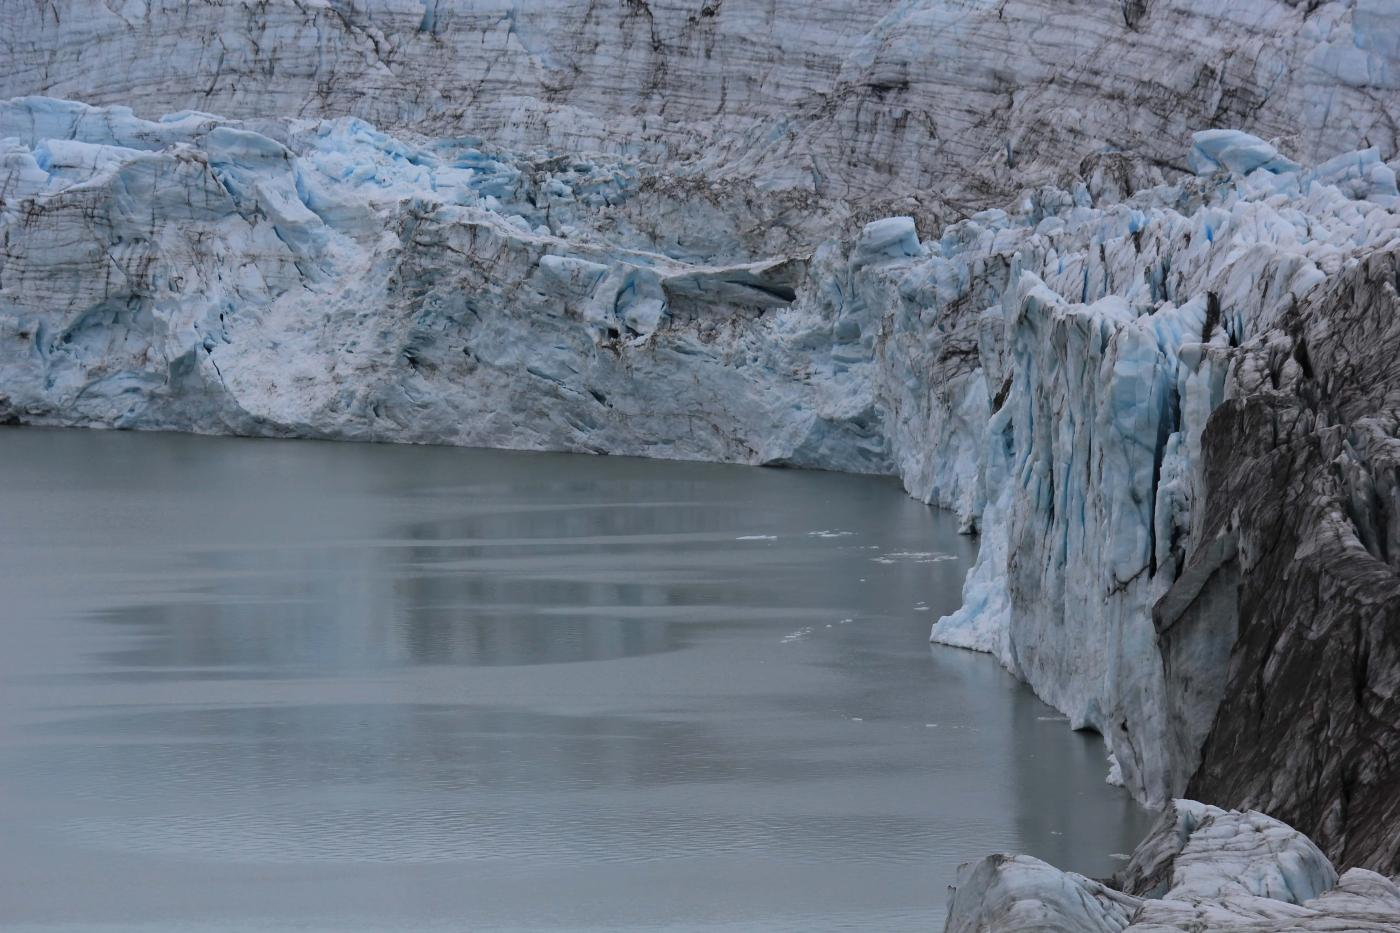 Ice Edge on ice sheet. Photo by Filip Hanzak - Visit Greenland